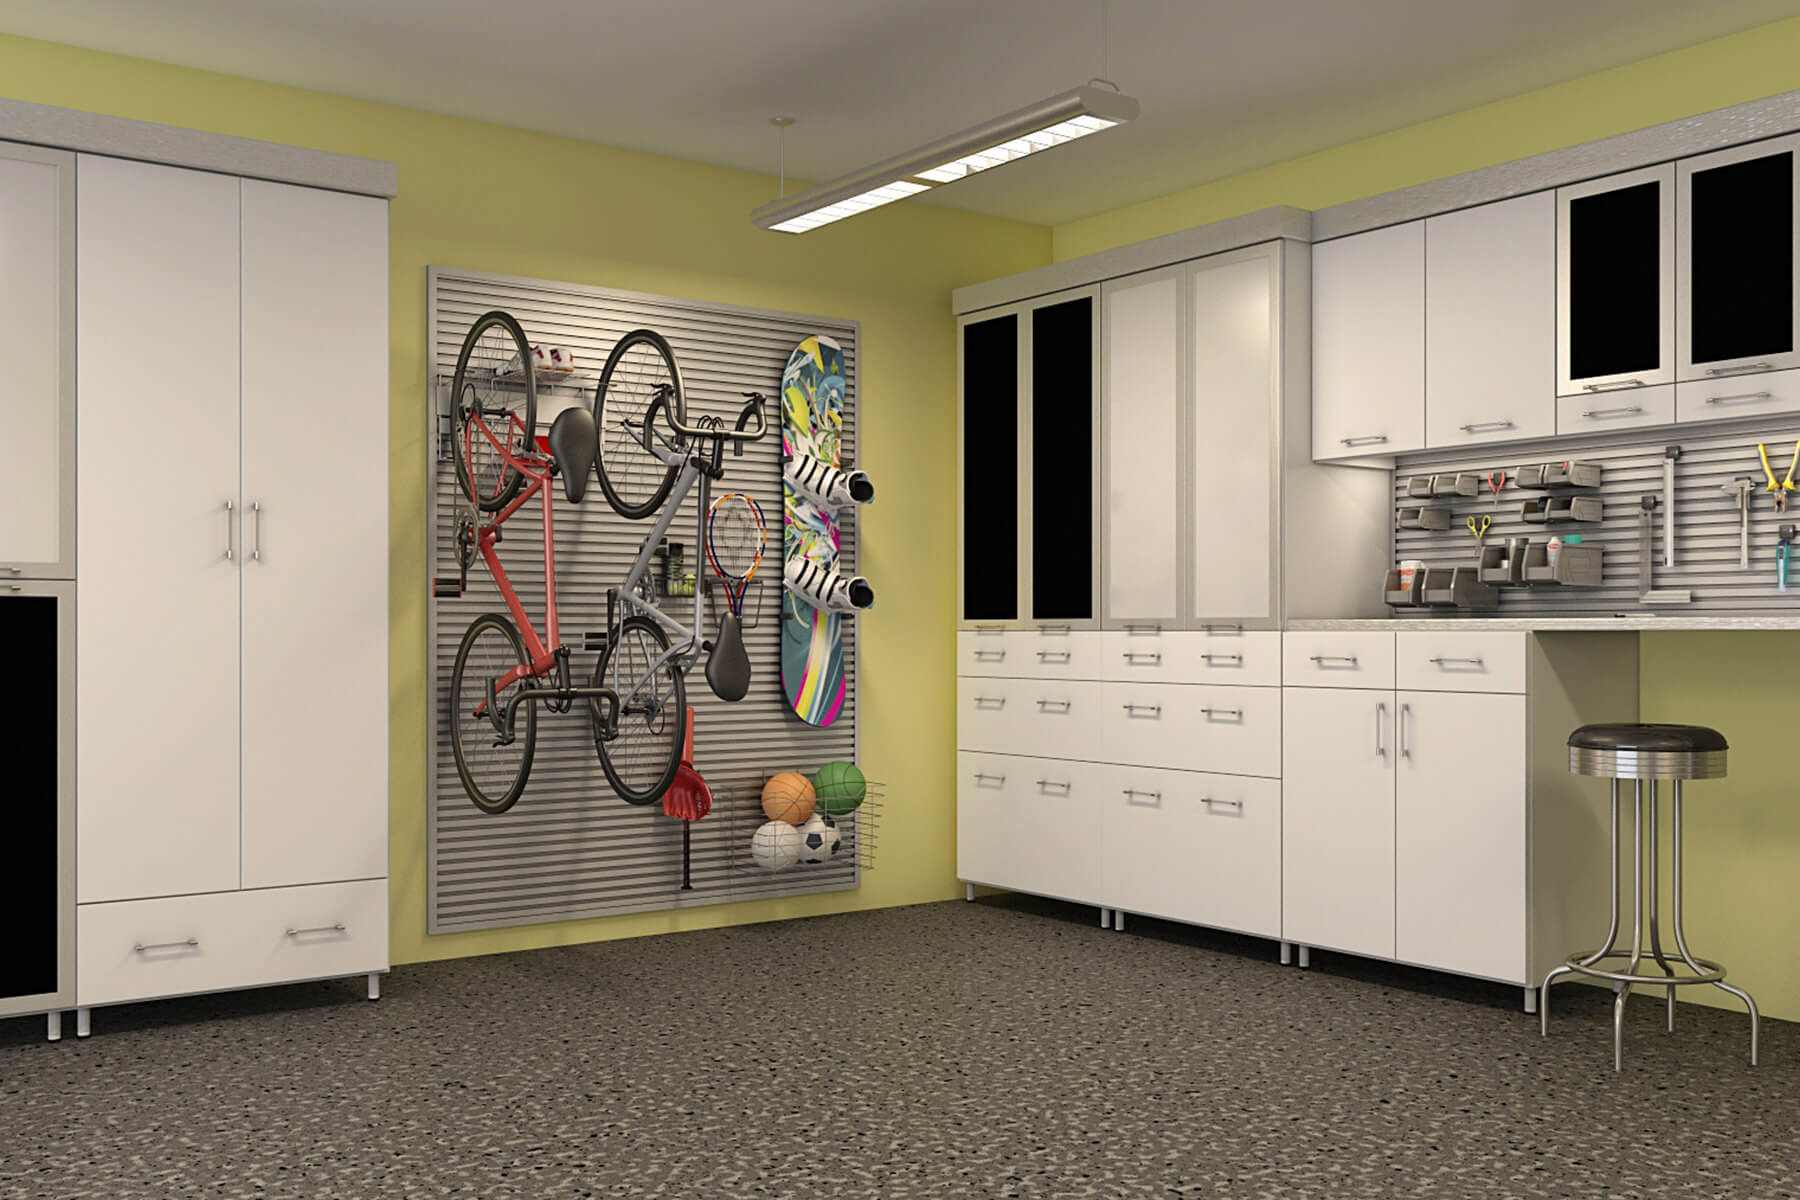 This garage features the large square wall rack placed at a corner of the room. Vertical storage for large items like bicycles, snowboards, and other smaller items is possible to this strongly embedded wall rack saving significant space for the garage.